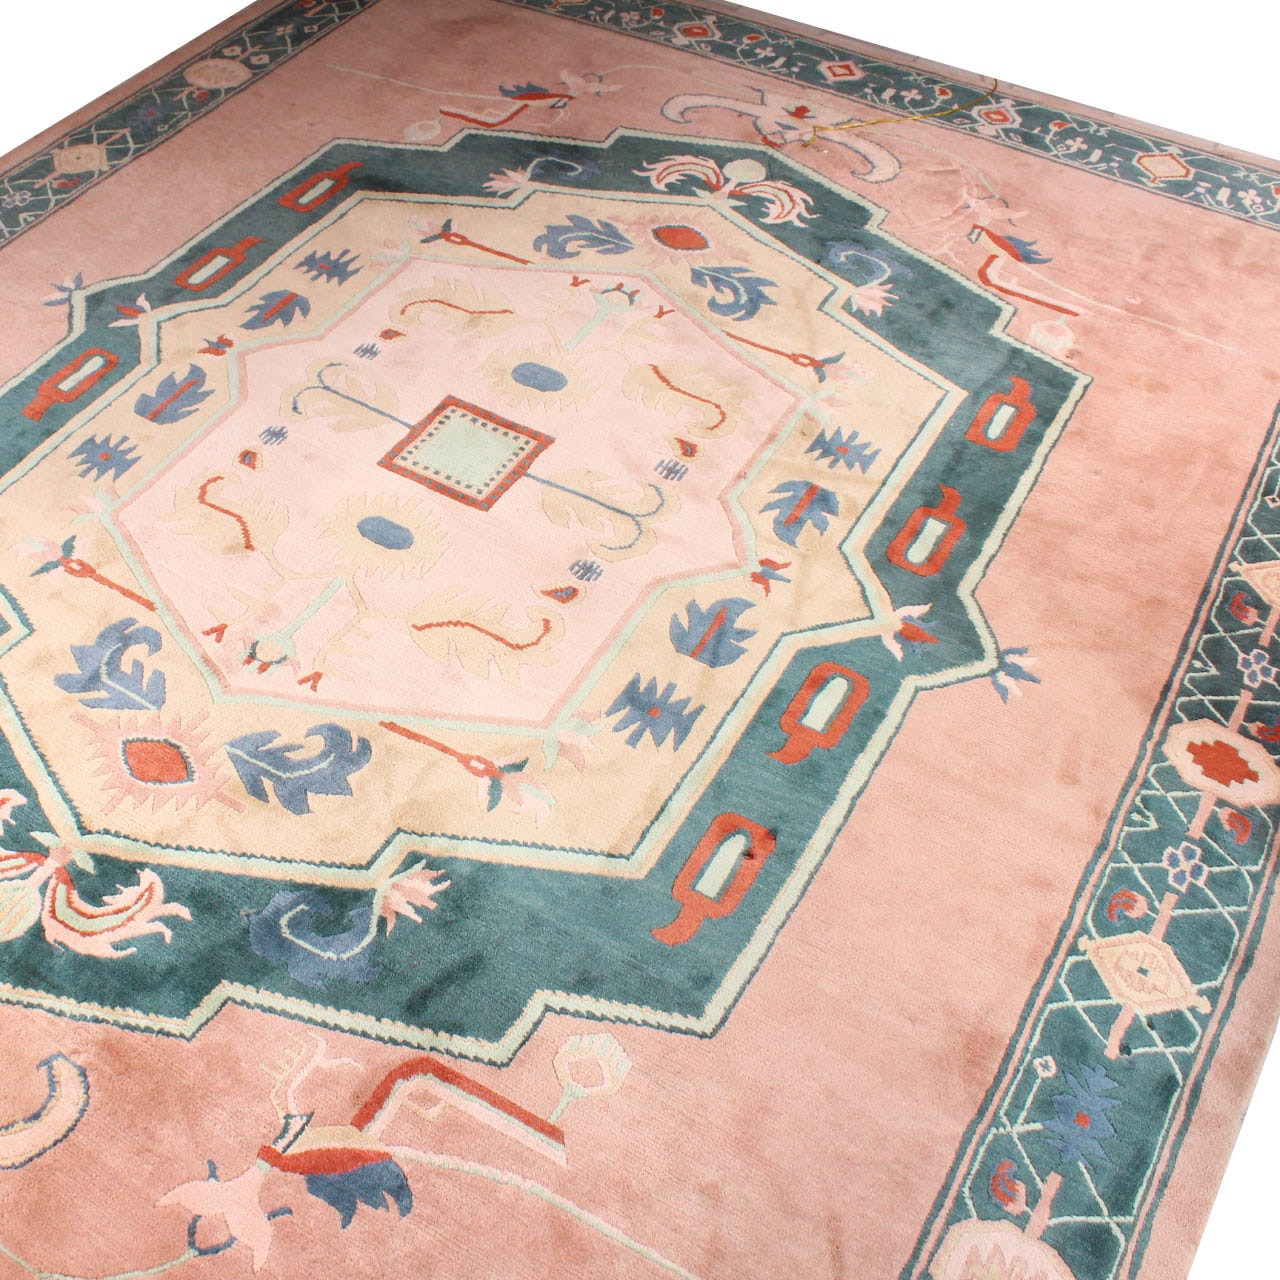 Hand-Knotted Tibetan-Nepalese Room Size Area Rug